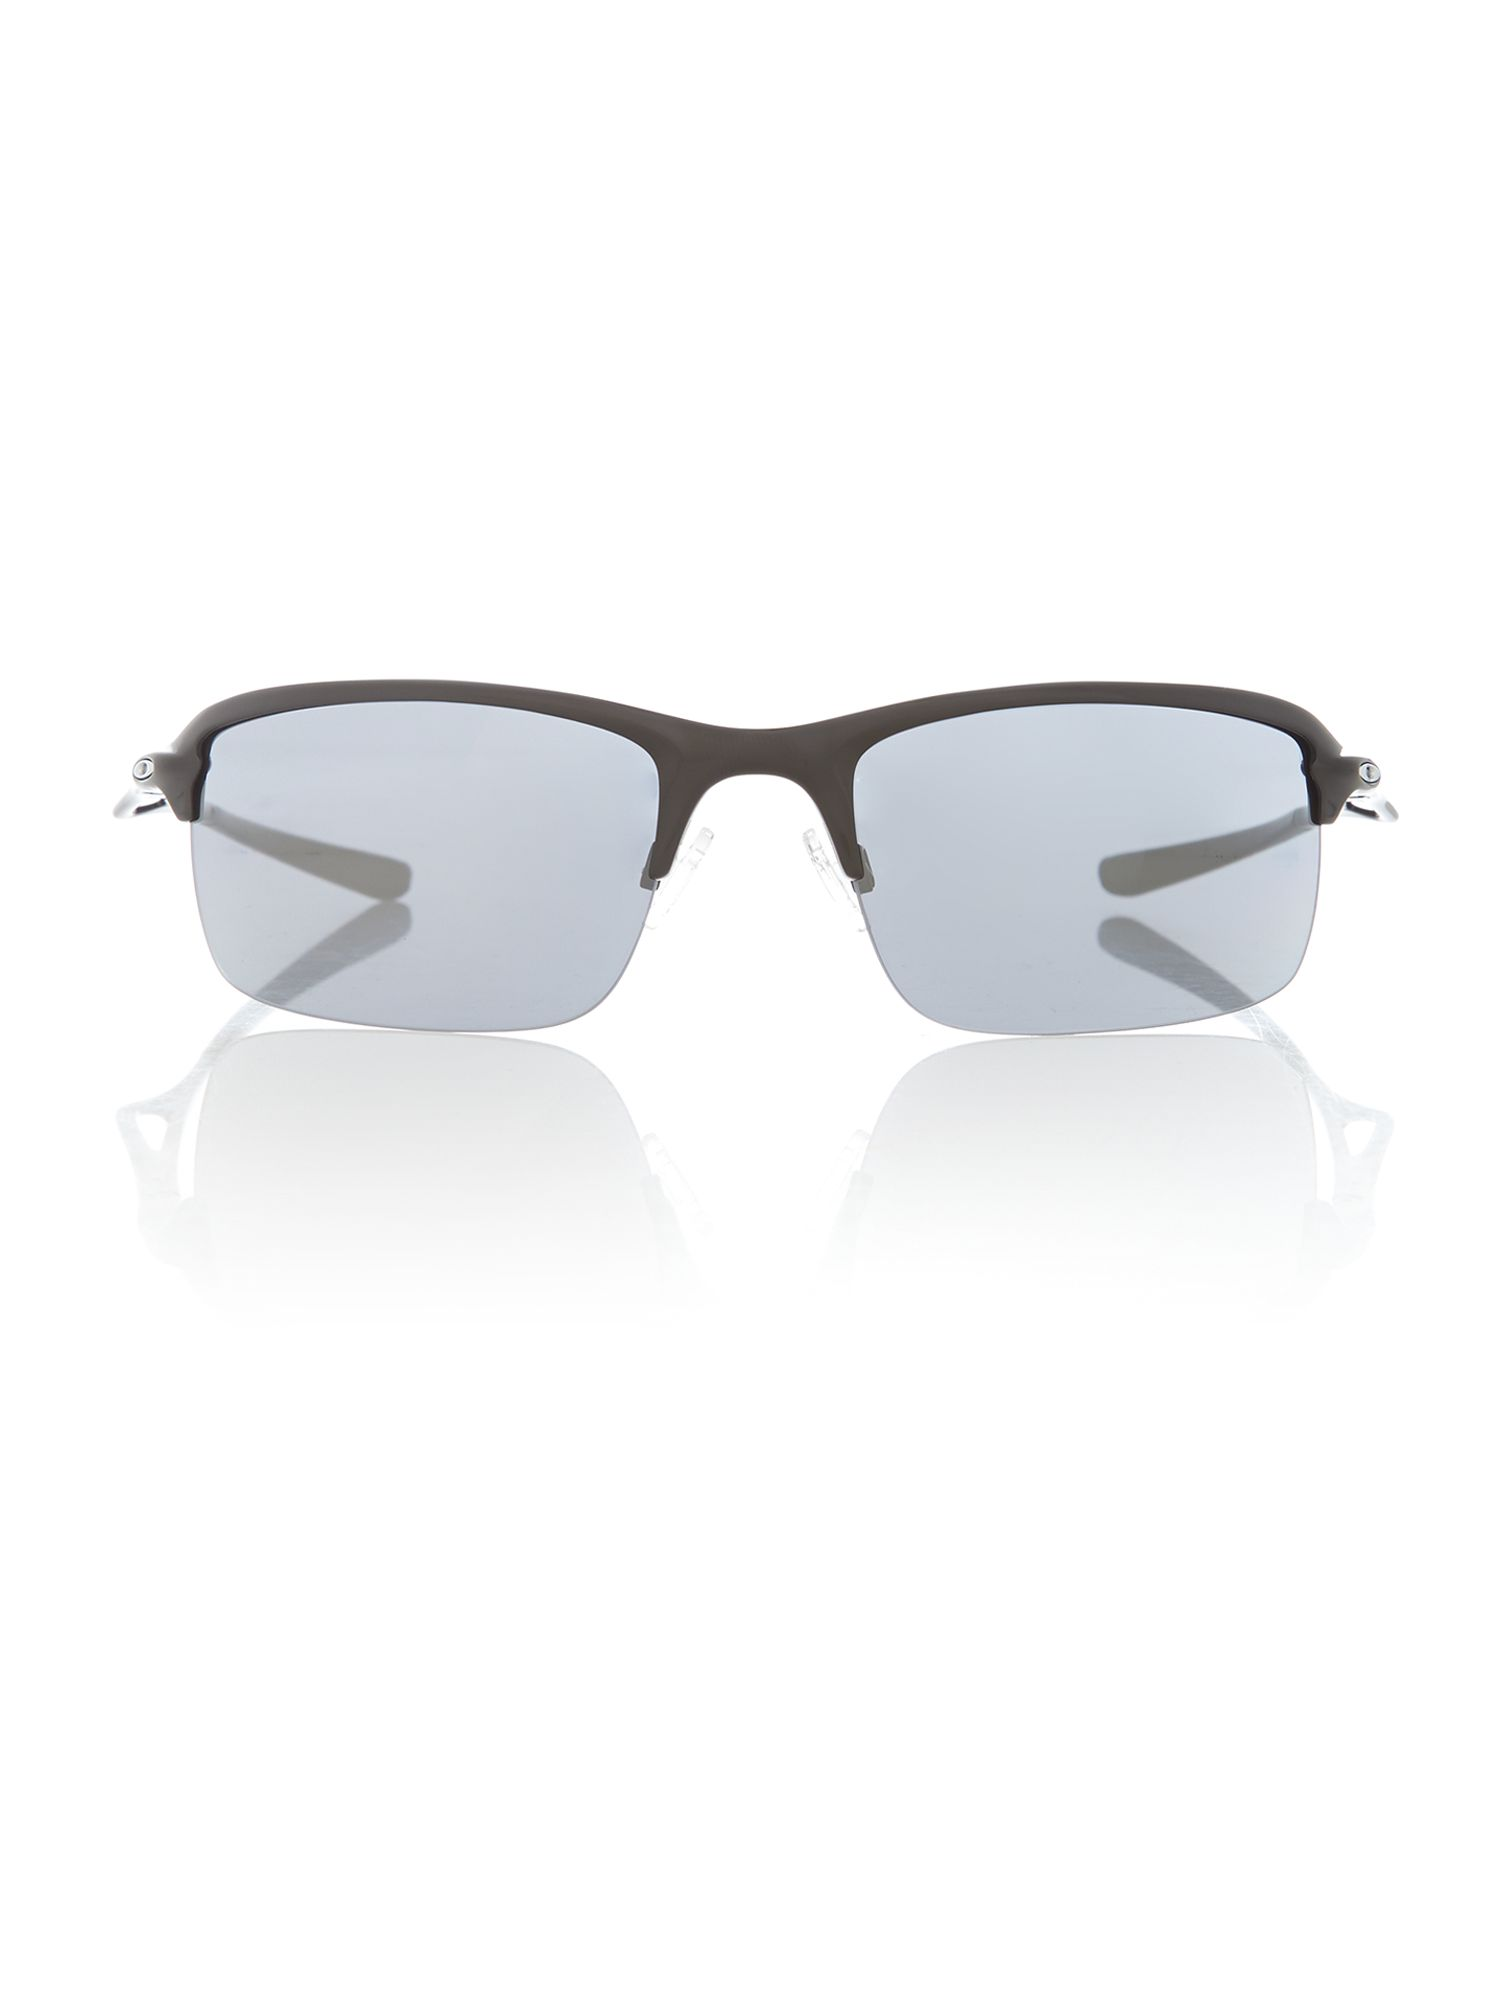 Men` wire tap polished black sunglasses